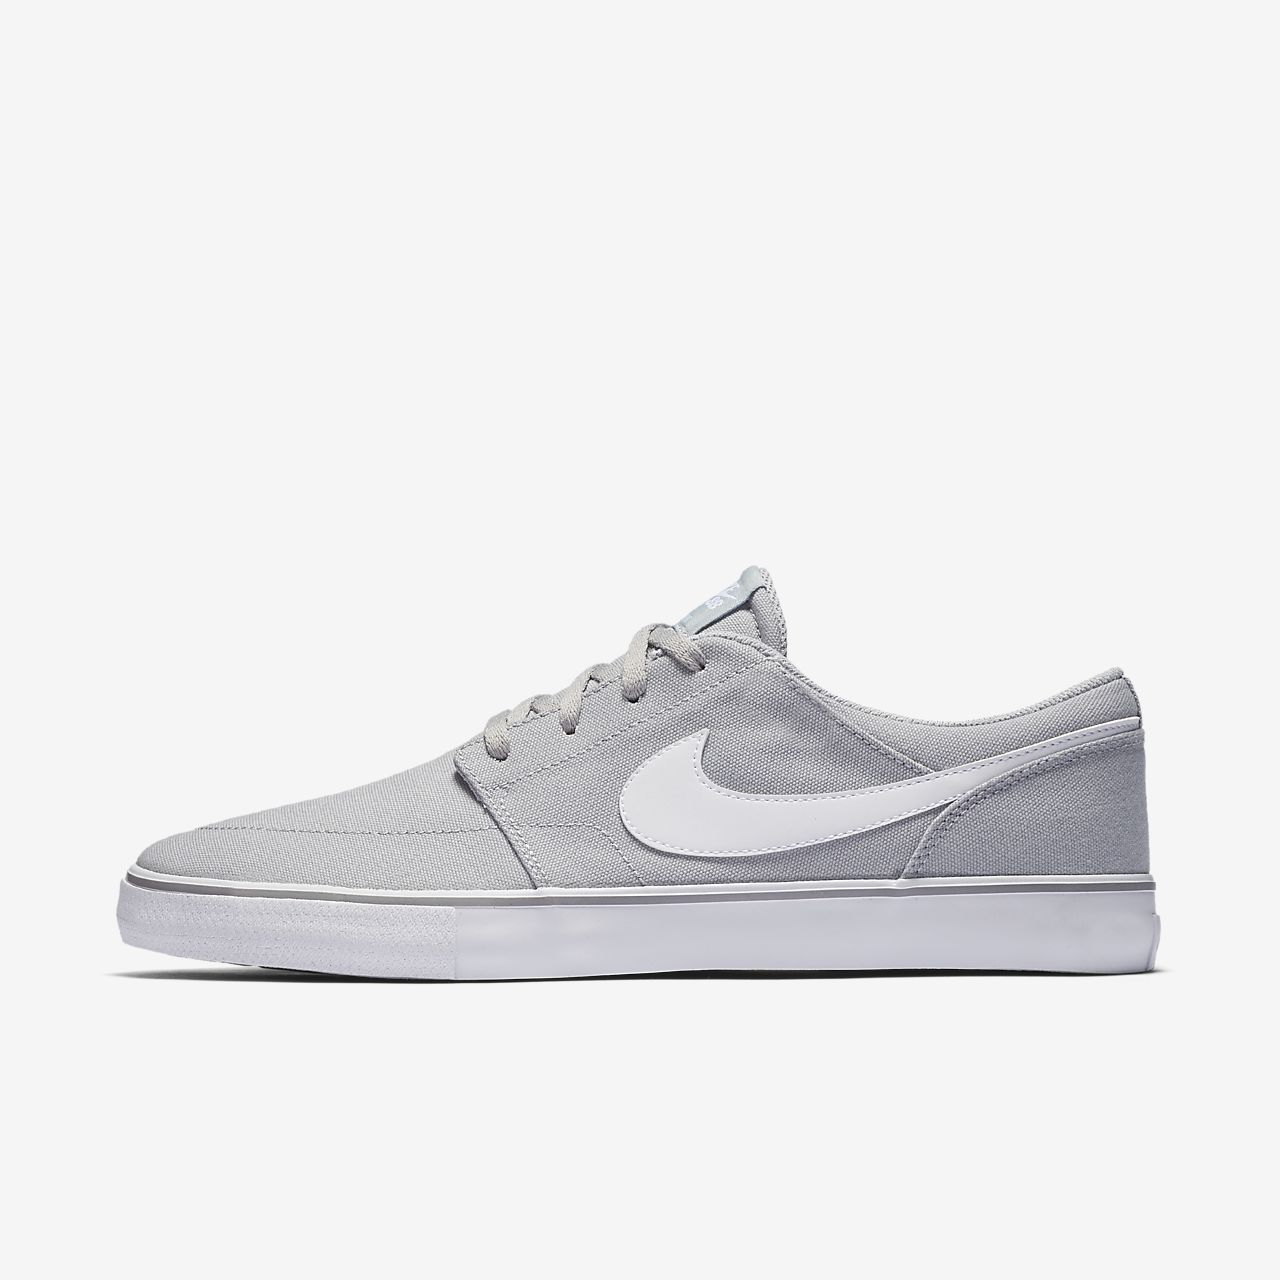 Nike SB Portmore II Boys Skateboarding Shoes Grey/White oK1509S